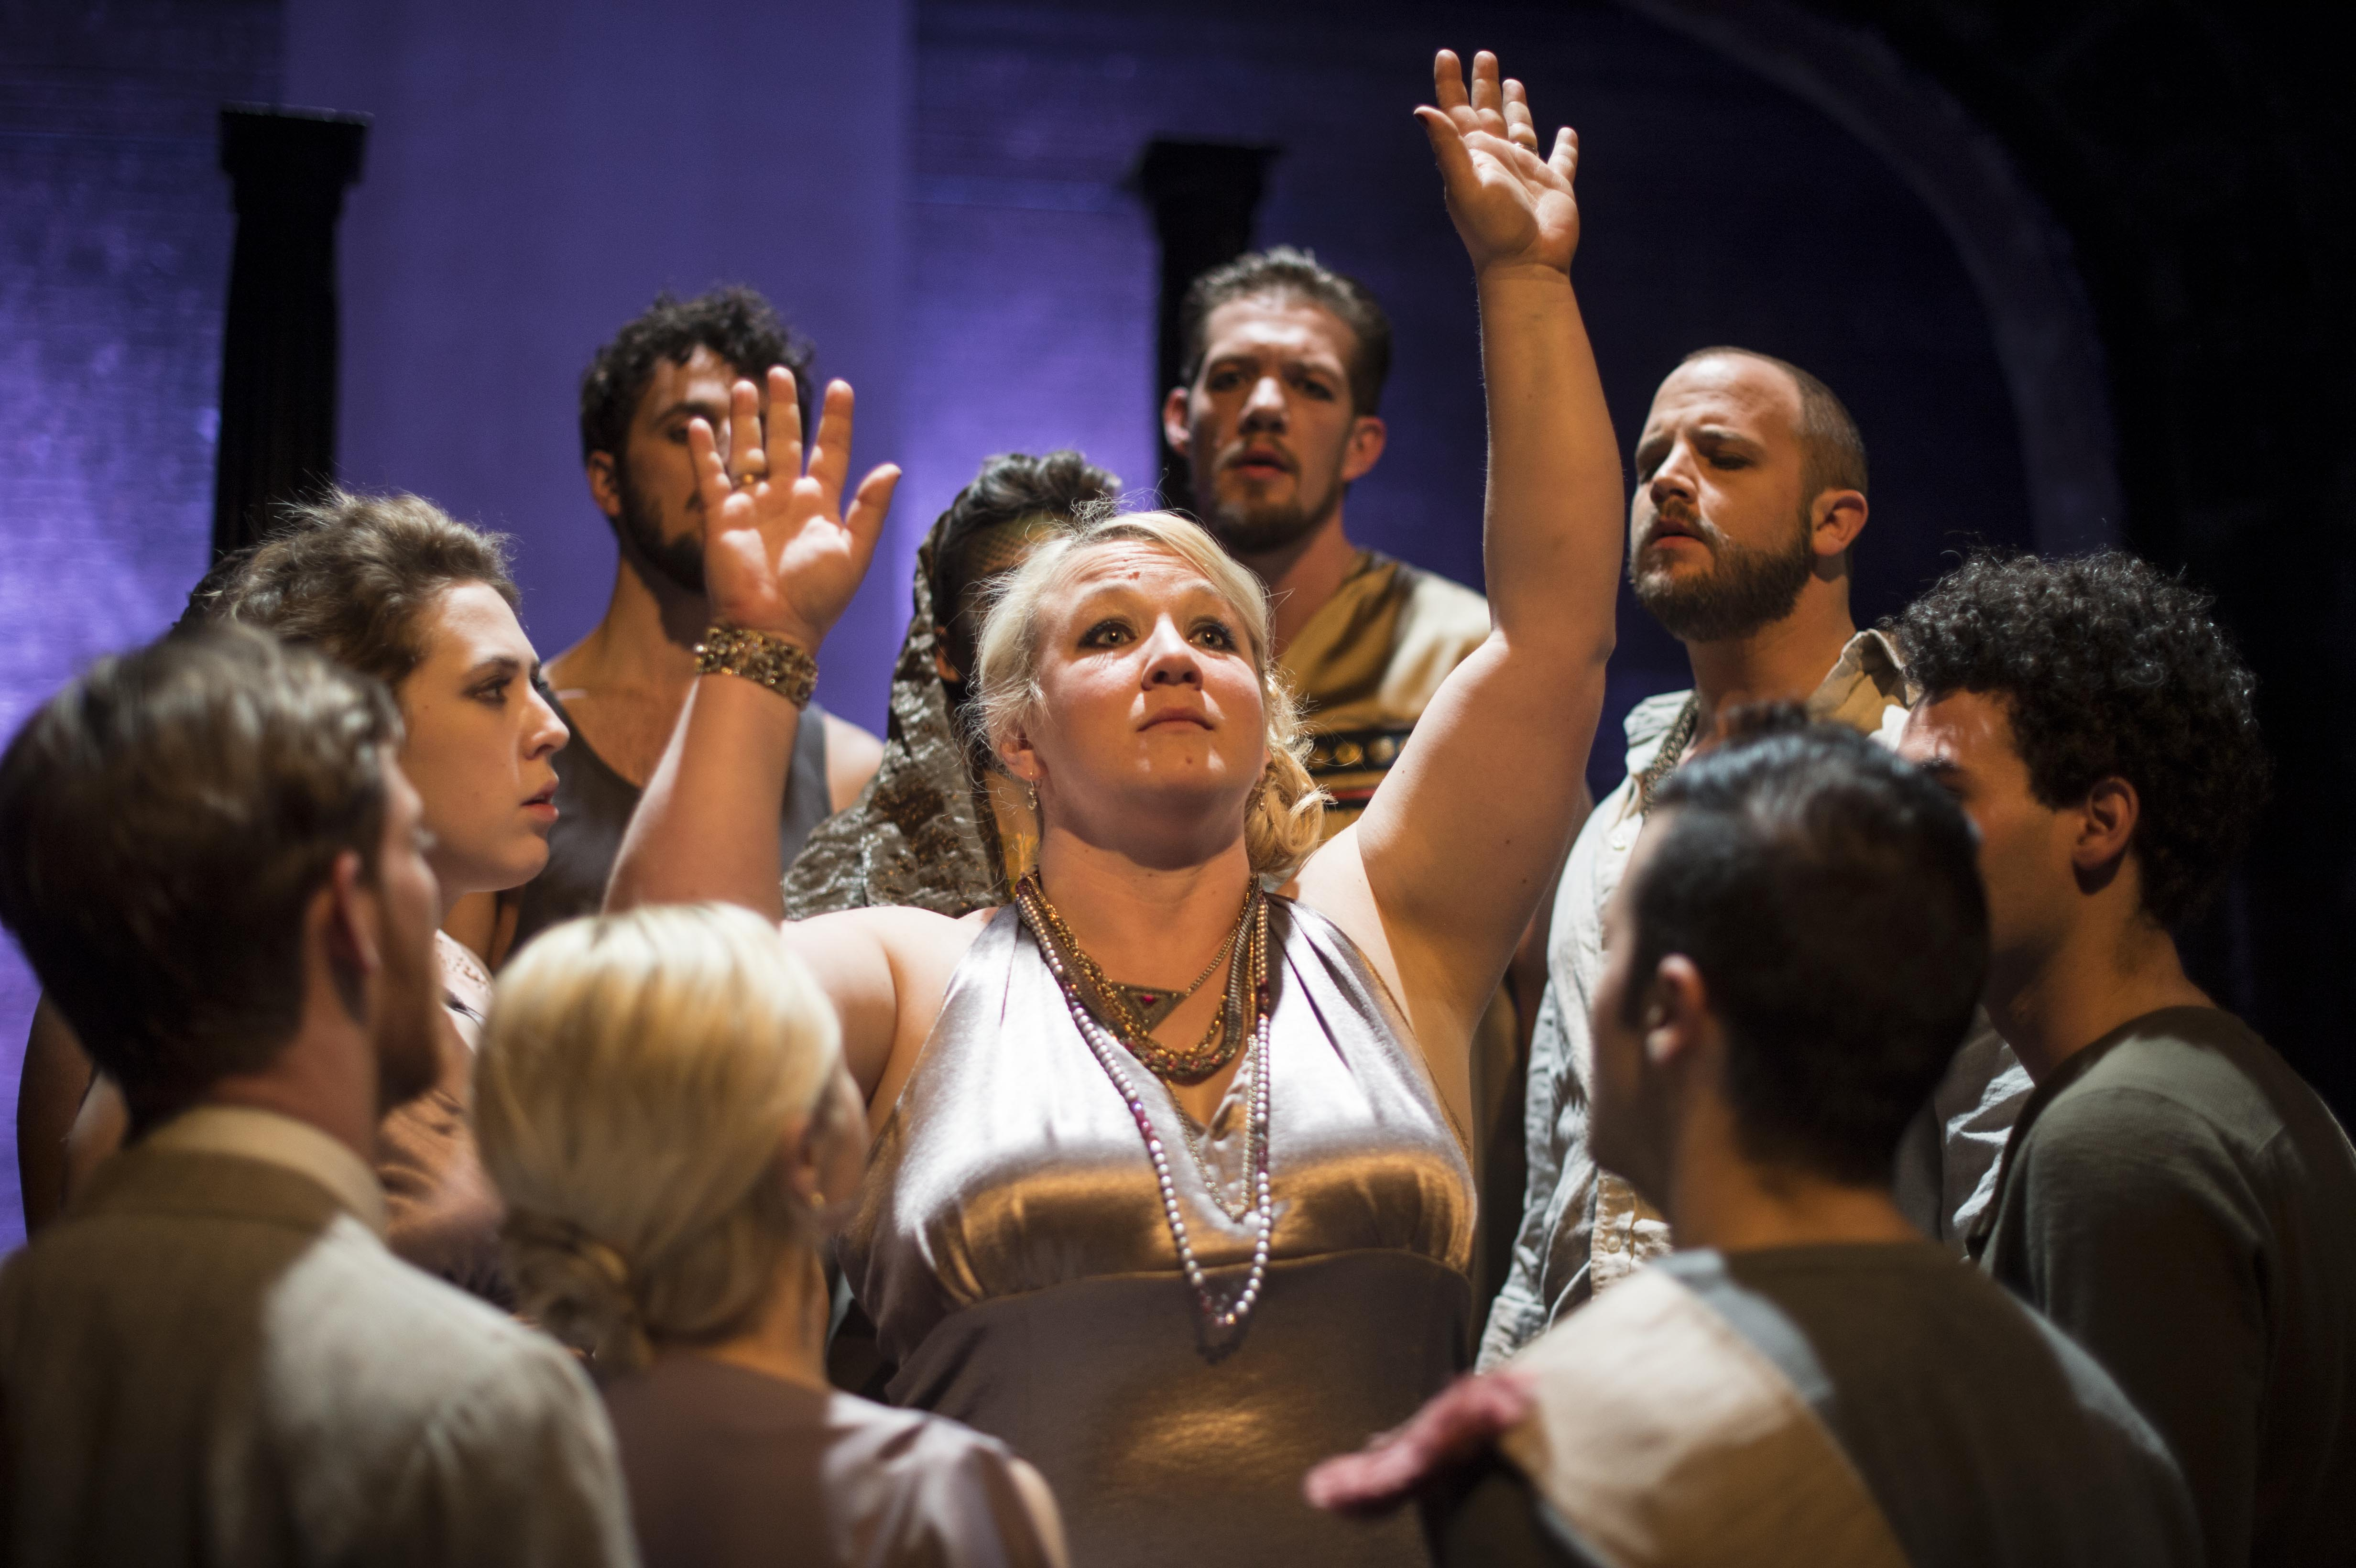 These Are the Men (March/April 2015), Hannah K. Holman as Pythia, flanked by ensemble members Foster Johns and Siddeeqah Shabazz. Photo credit: Carl Atiya Swanson